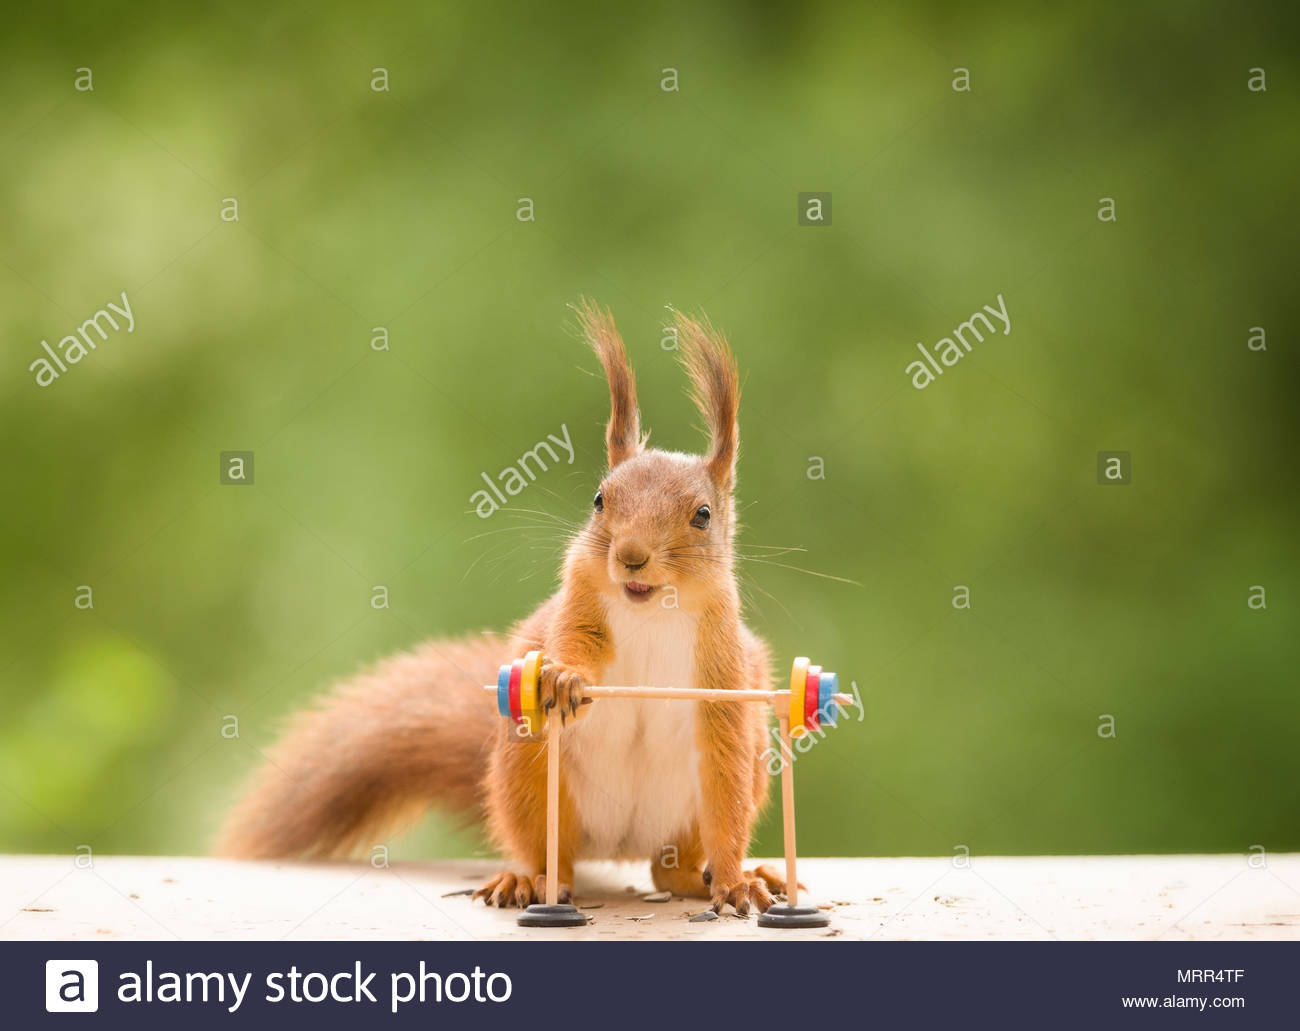 red squirrel is holding on to a Barbell - Stock Image